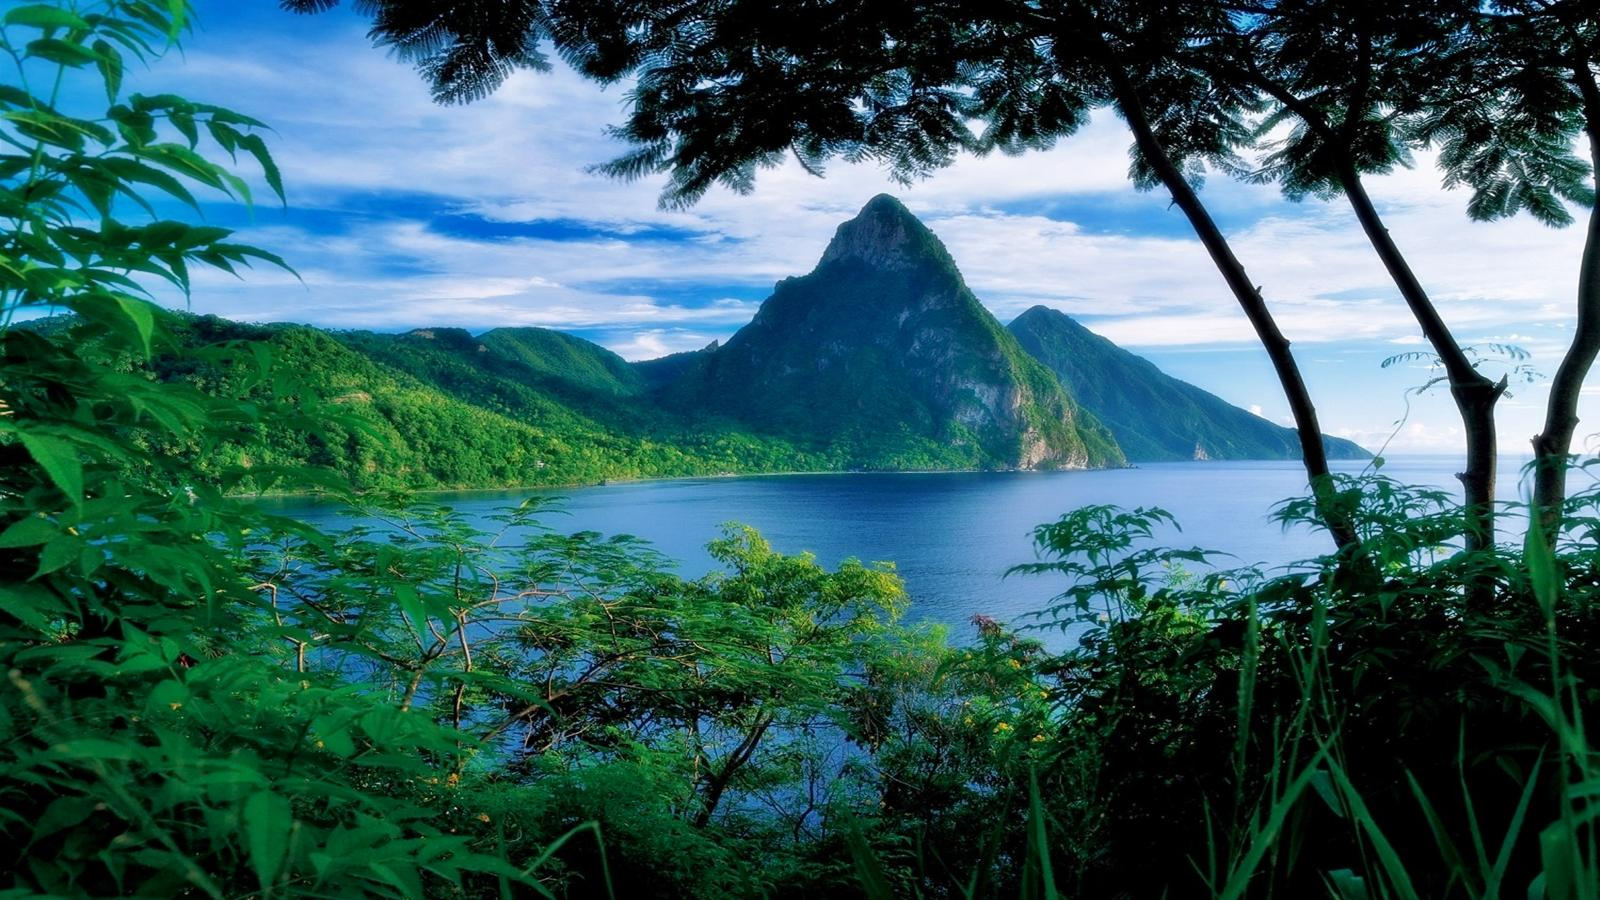 saint lucia   154500   High Quality and Resolution Wallpapers 1600x900